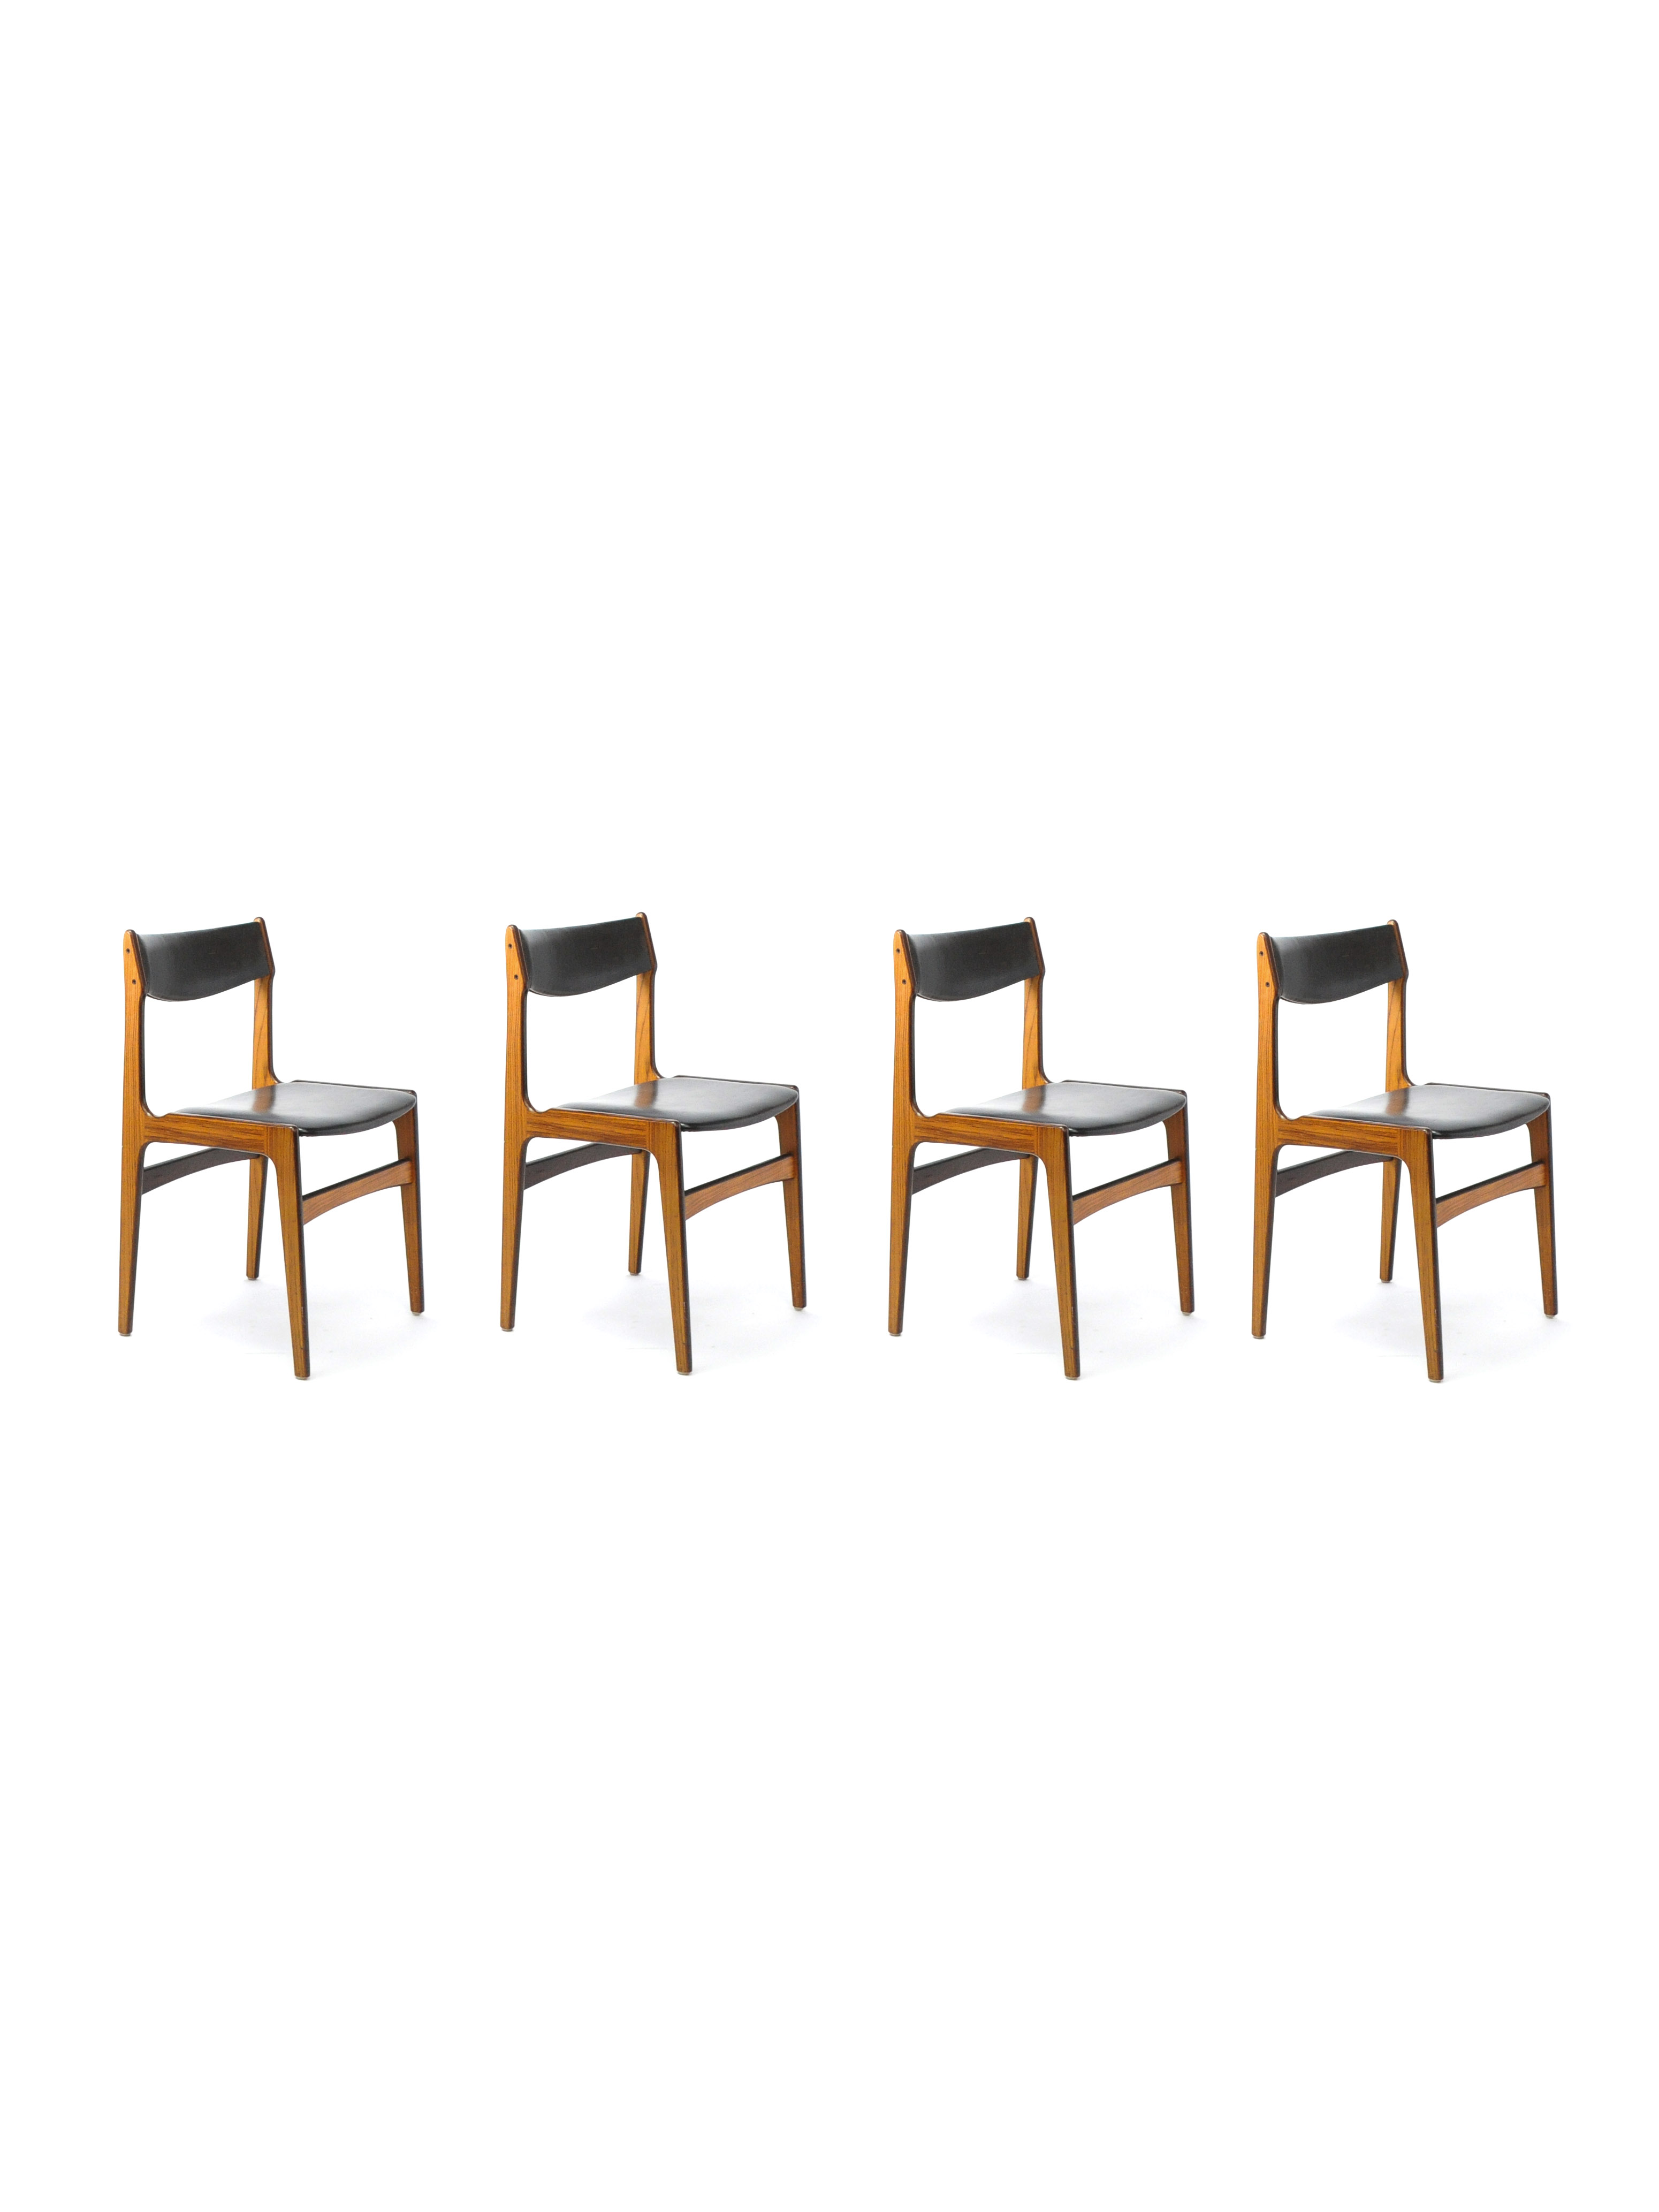 SET OF FOUR CHAIRS ATTRIBUTED TO ERIK BUCK